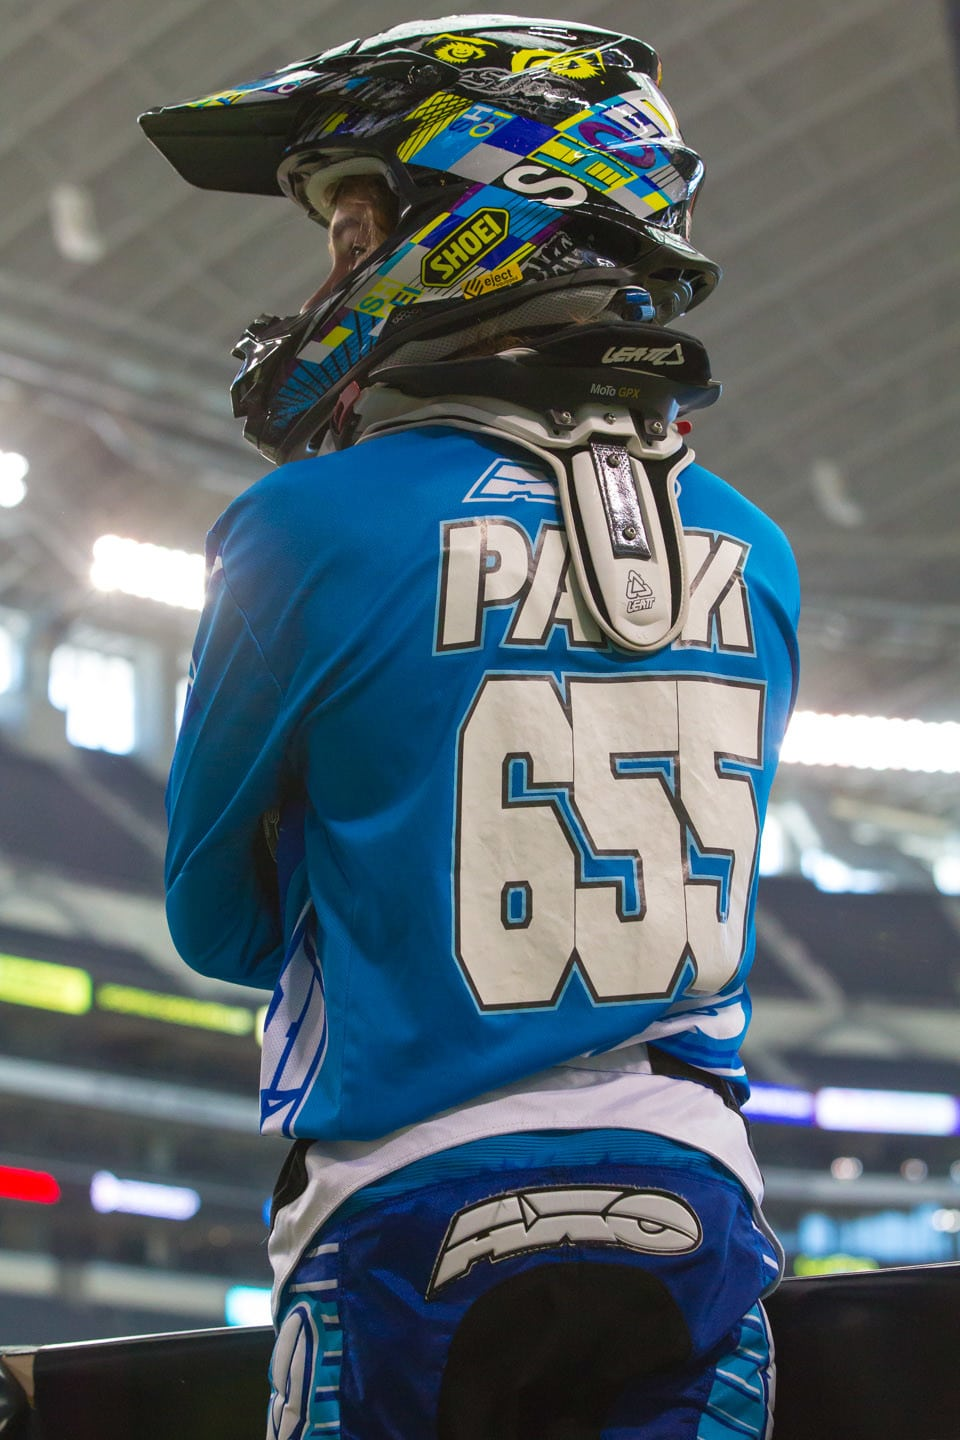 . Jon Jon Pauk hails from Alberta and has been riding SX for a couple years now. He managed to just make the night show in Texas.